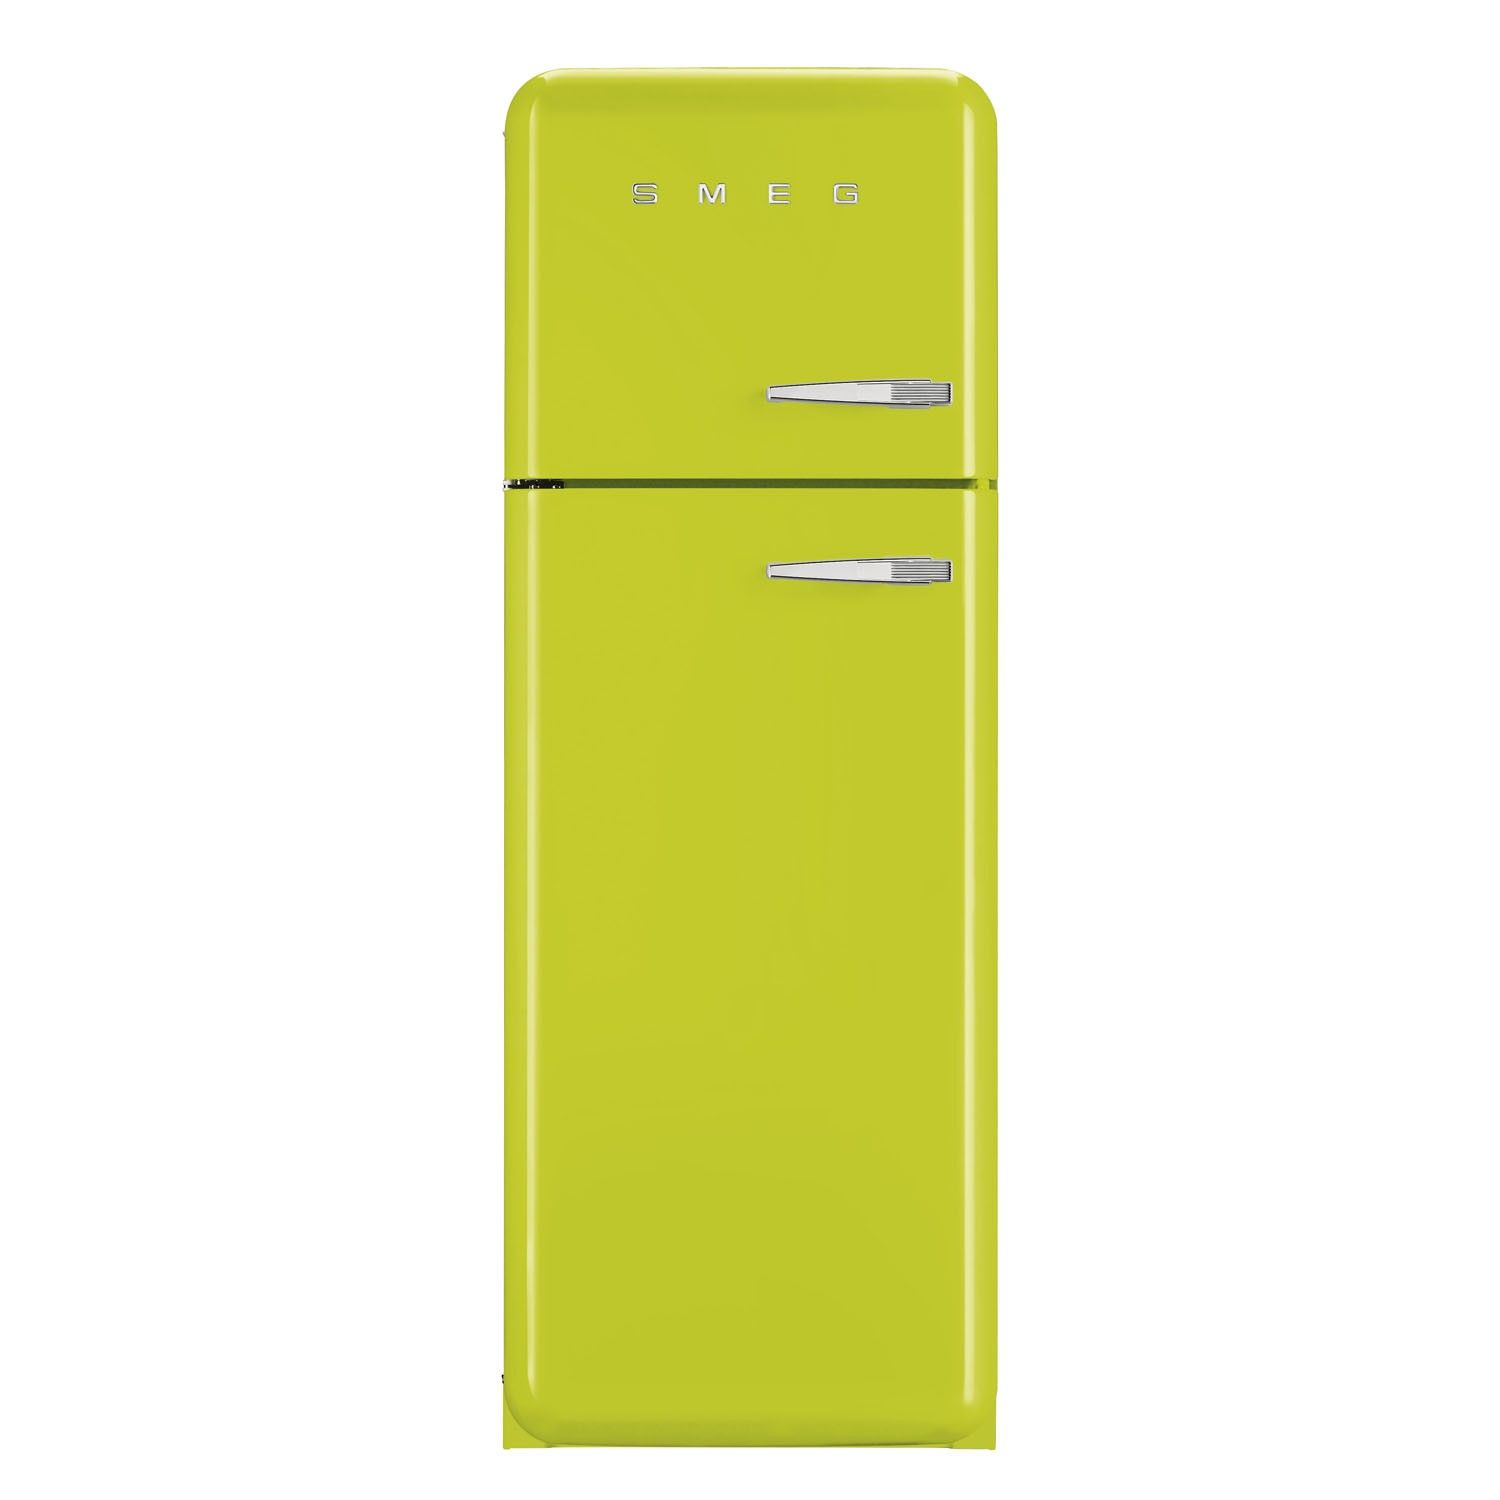 Smeg FAB30LFL 50\'s Retro Style Lime Green Fridge Freezer | Retro ...